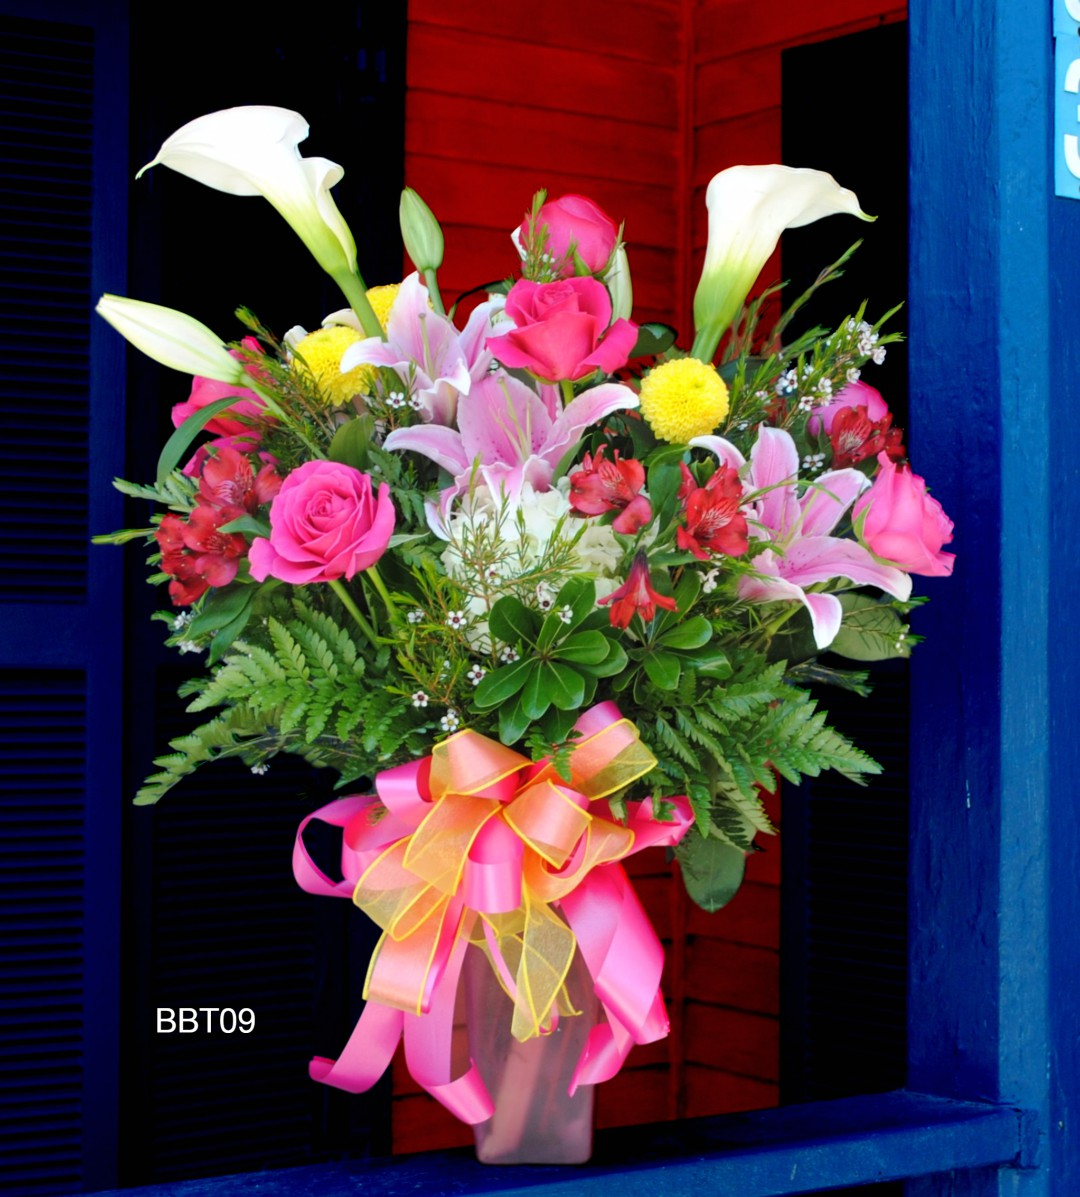 Bbt09 bright and beautiful the nassau florist order flowers online bbt09 bright and beautiful izmirmasajfo